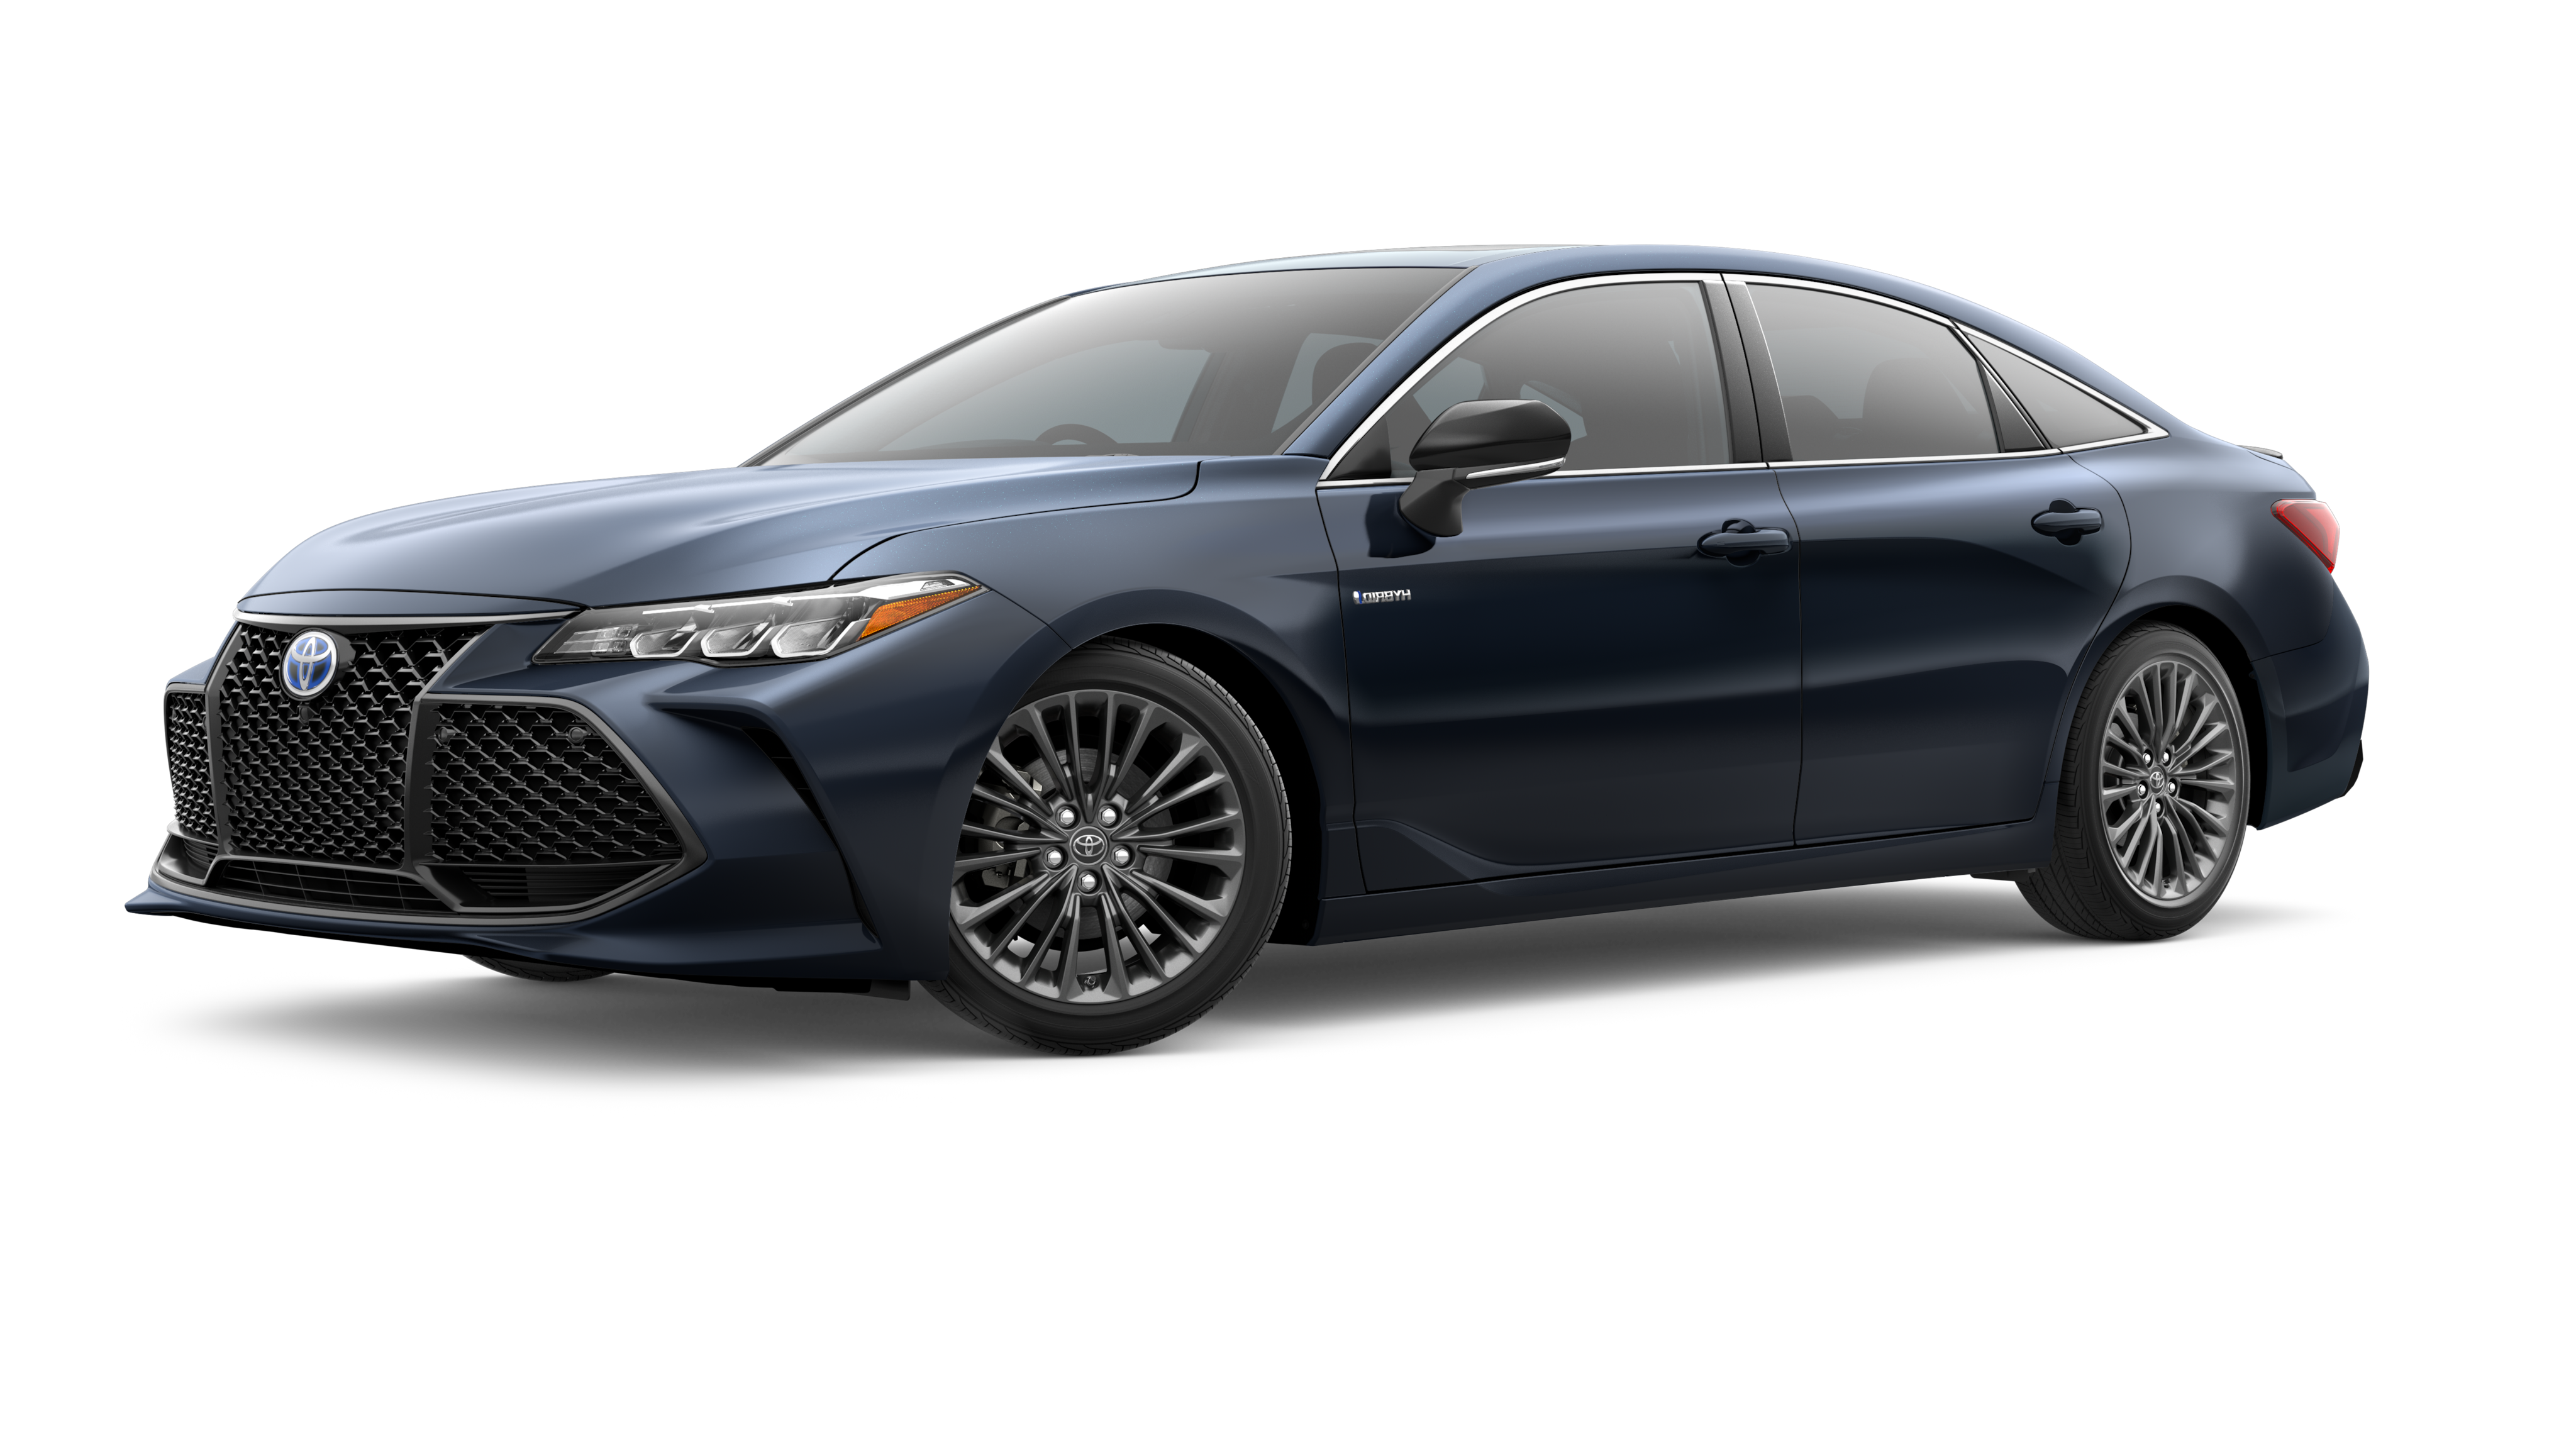 Review of 2019 Toyota Avalon Here at Larry H Miller Toyota Corona near Corona